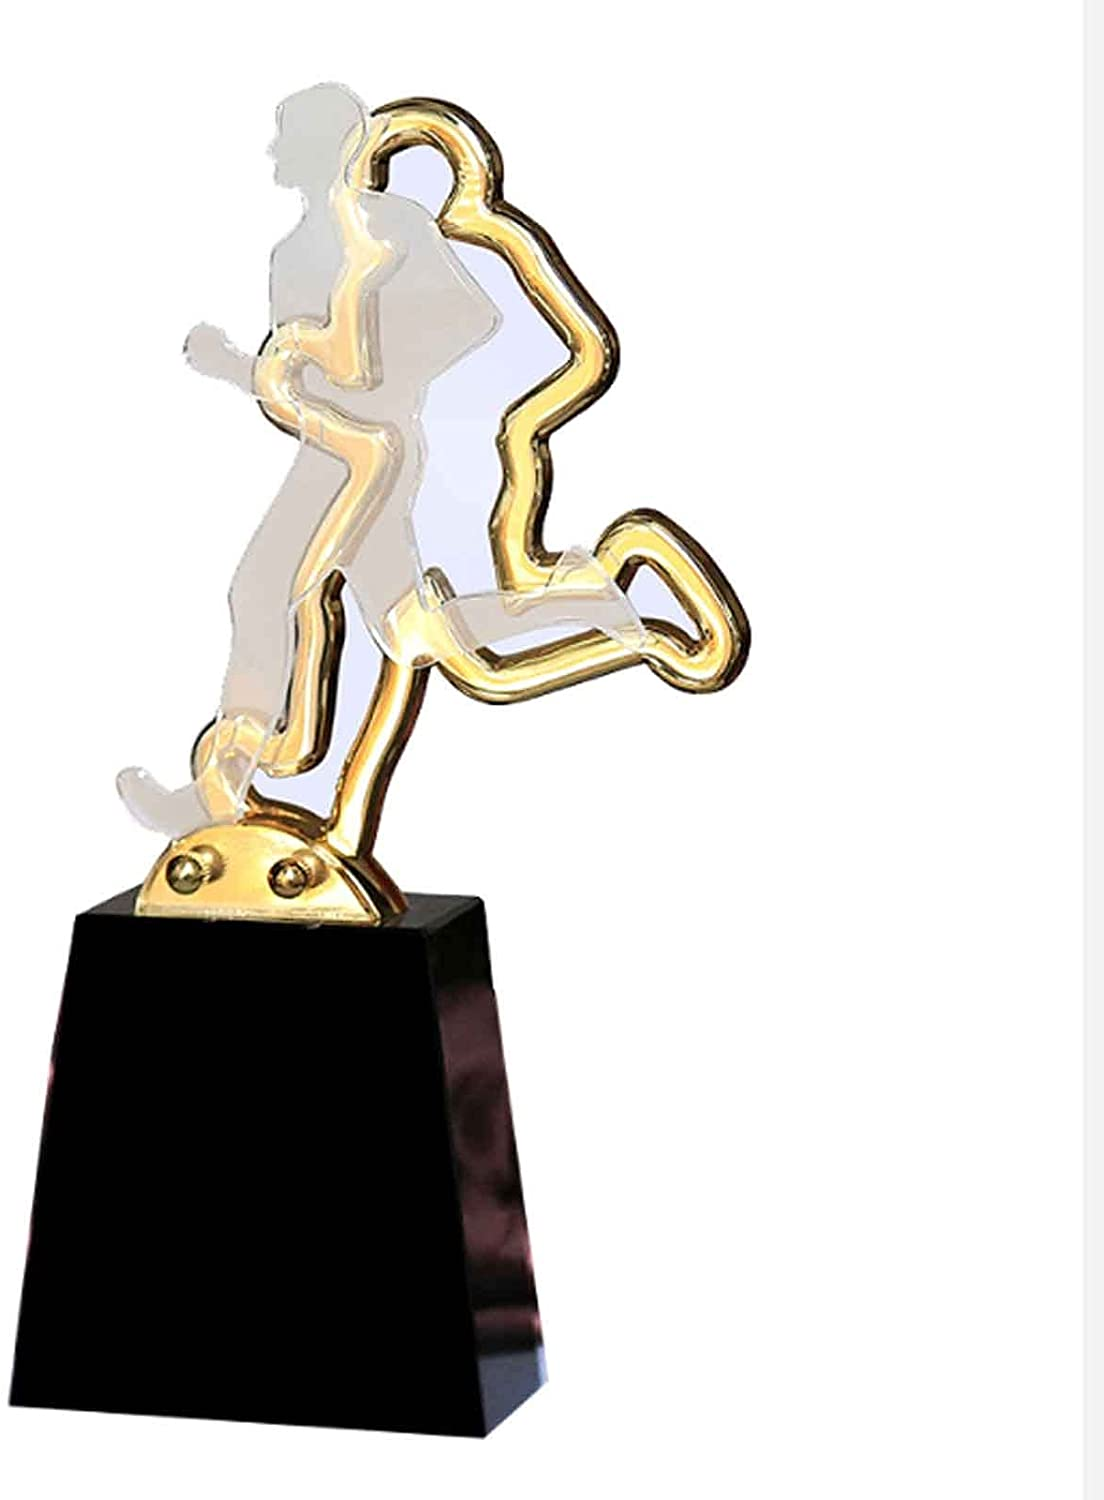 Trophy Popular brand Trophies Running Contest SEAL limited product Golden Awar Series Sports